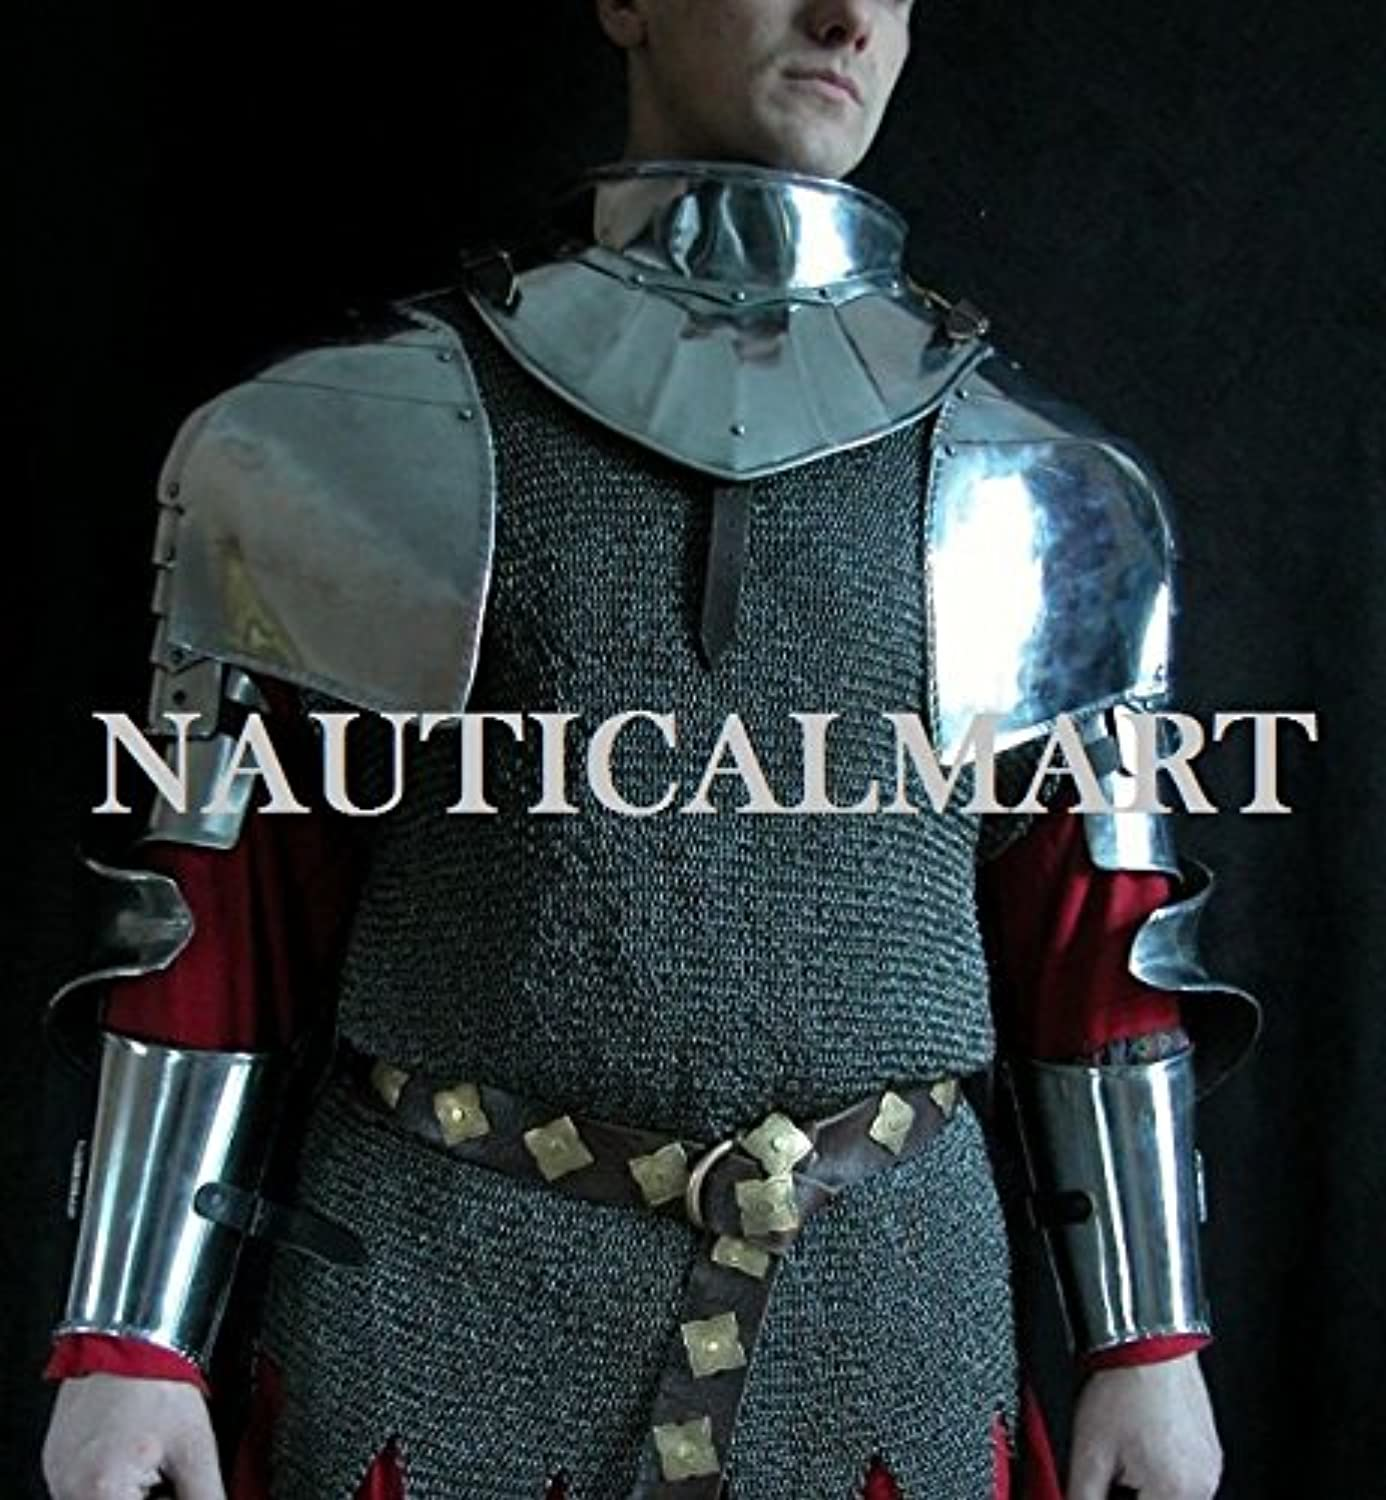 NAUTICALMART Medieval Knight Arm Armor Spaulders Pauldrons Set